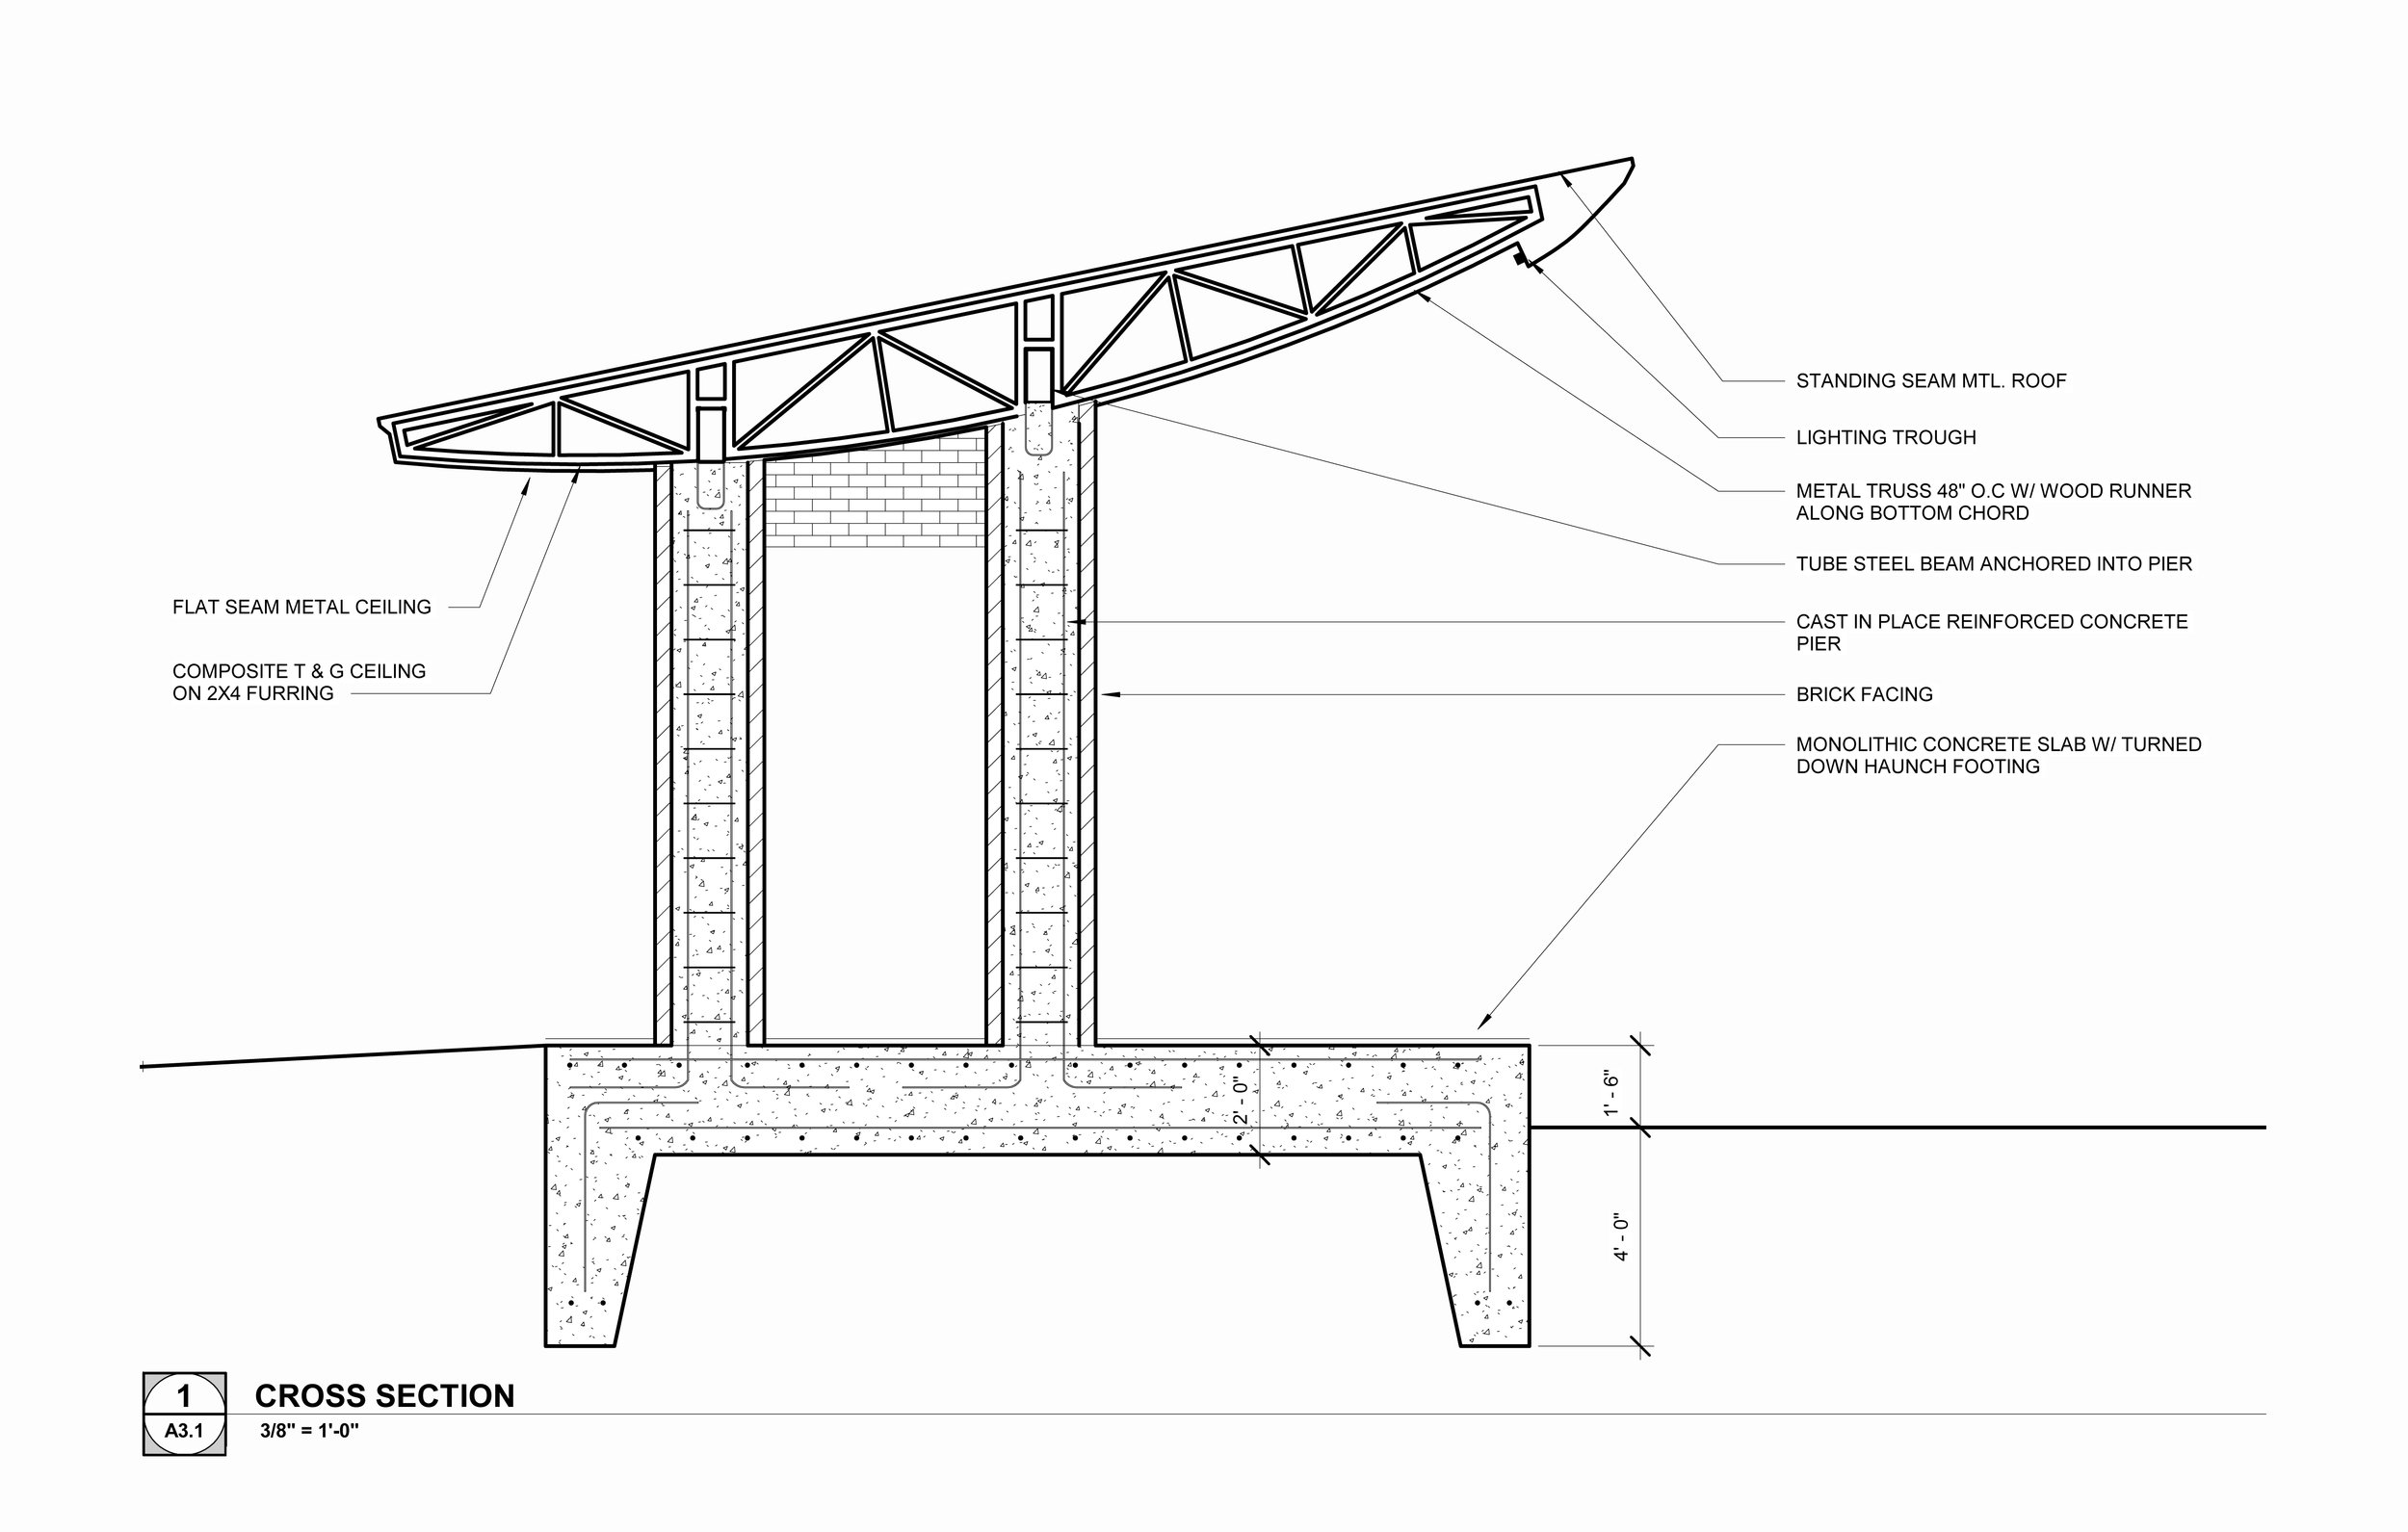 Band Stand II 2017- 08- 30-2017 - Sheet - A3-1 - BUILDING SECTIONS.jpg